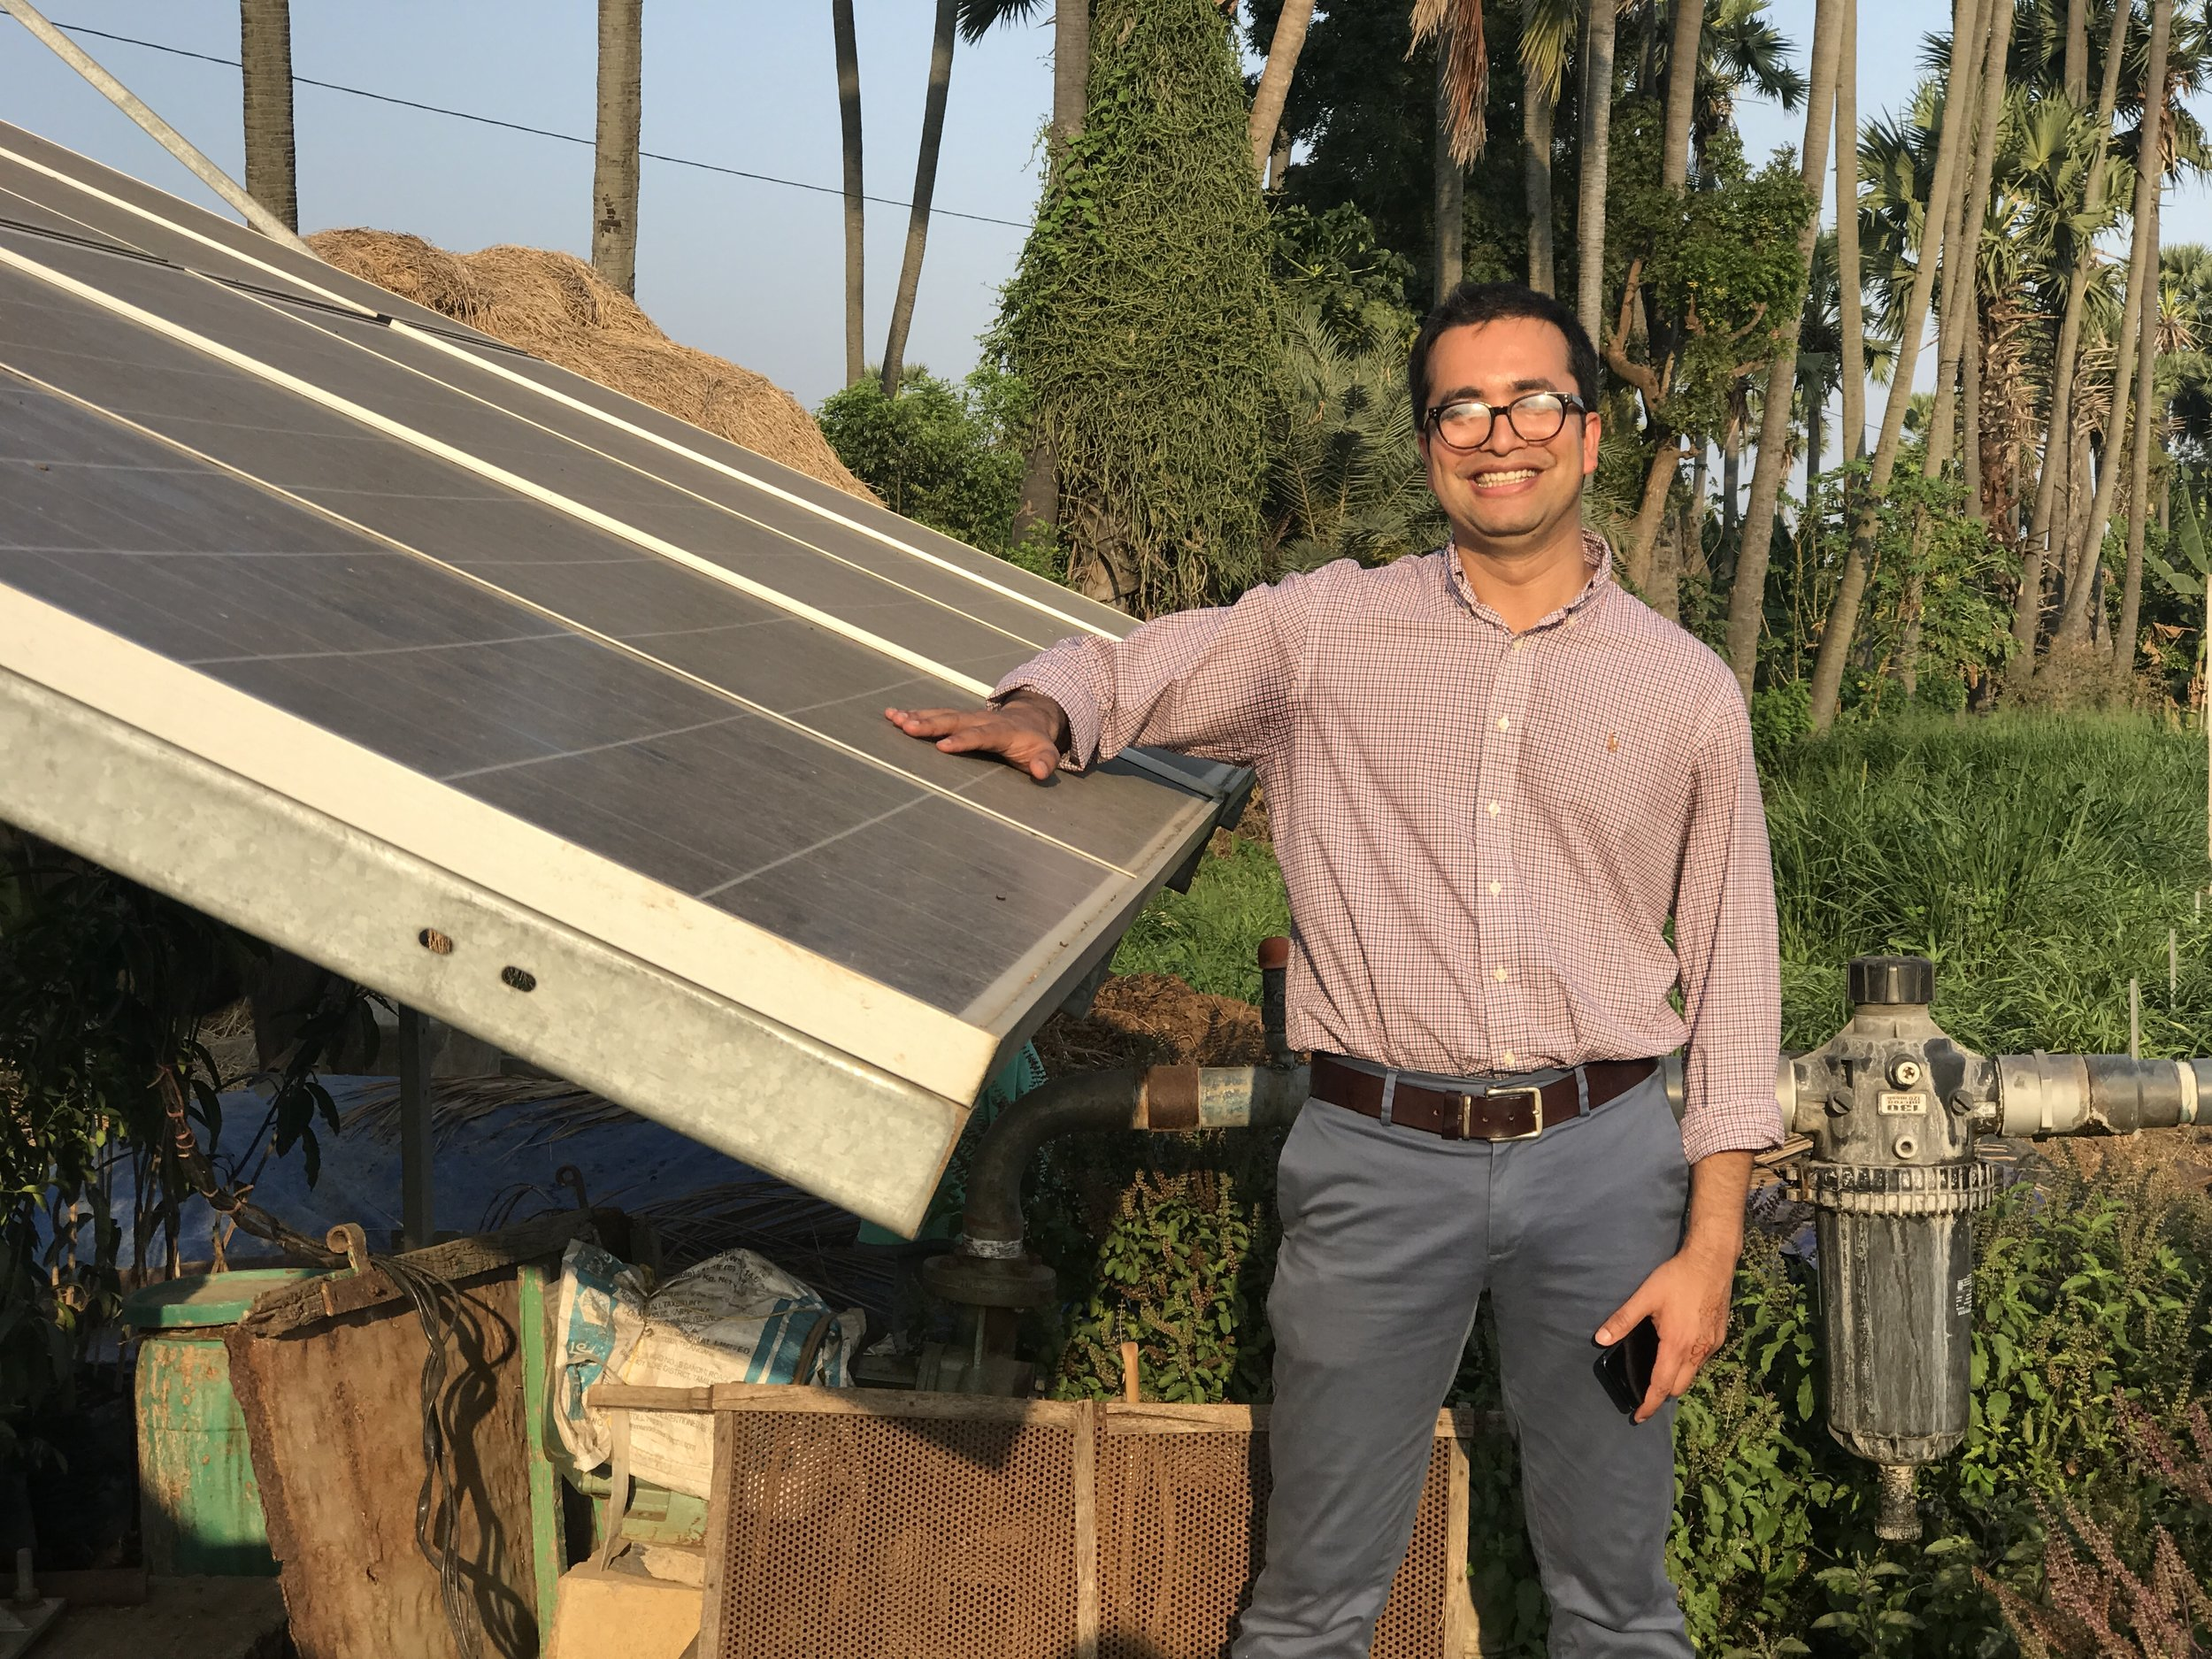 Pre-doctoral student, Rishikesh Bhandary, with solar panels in India.